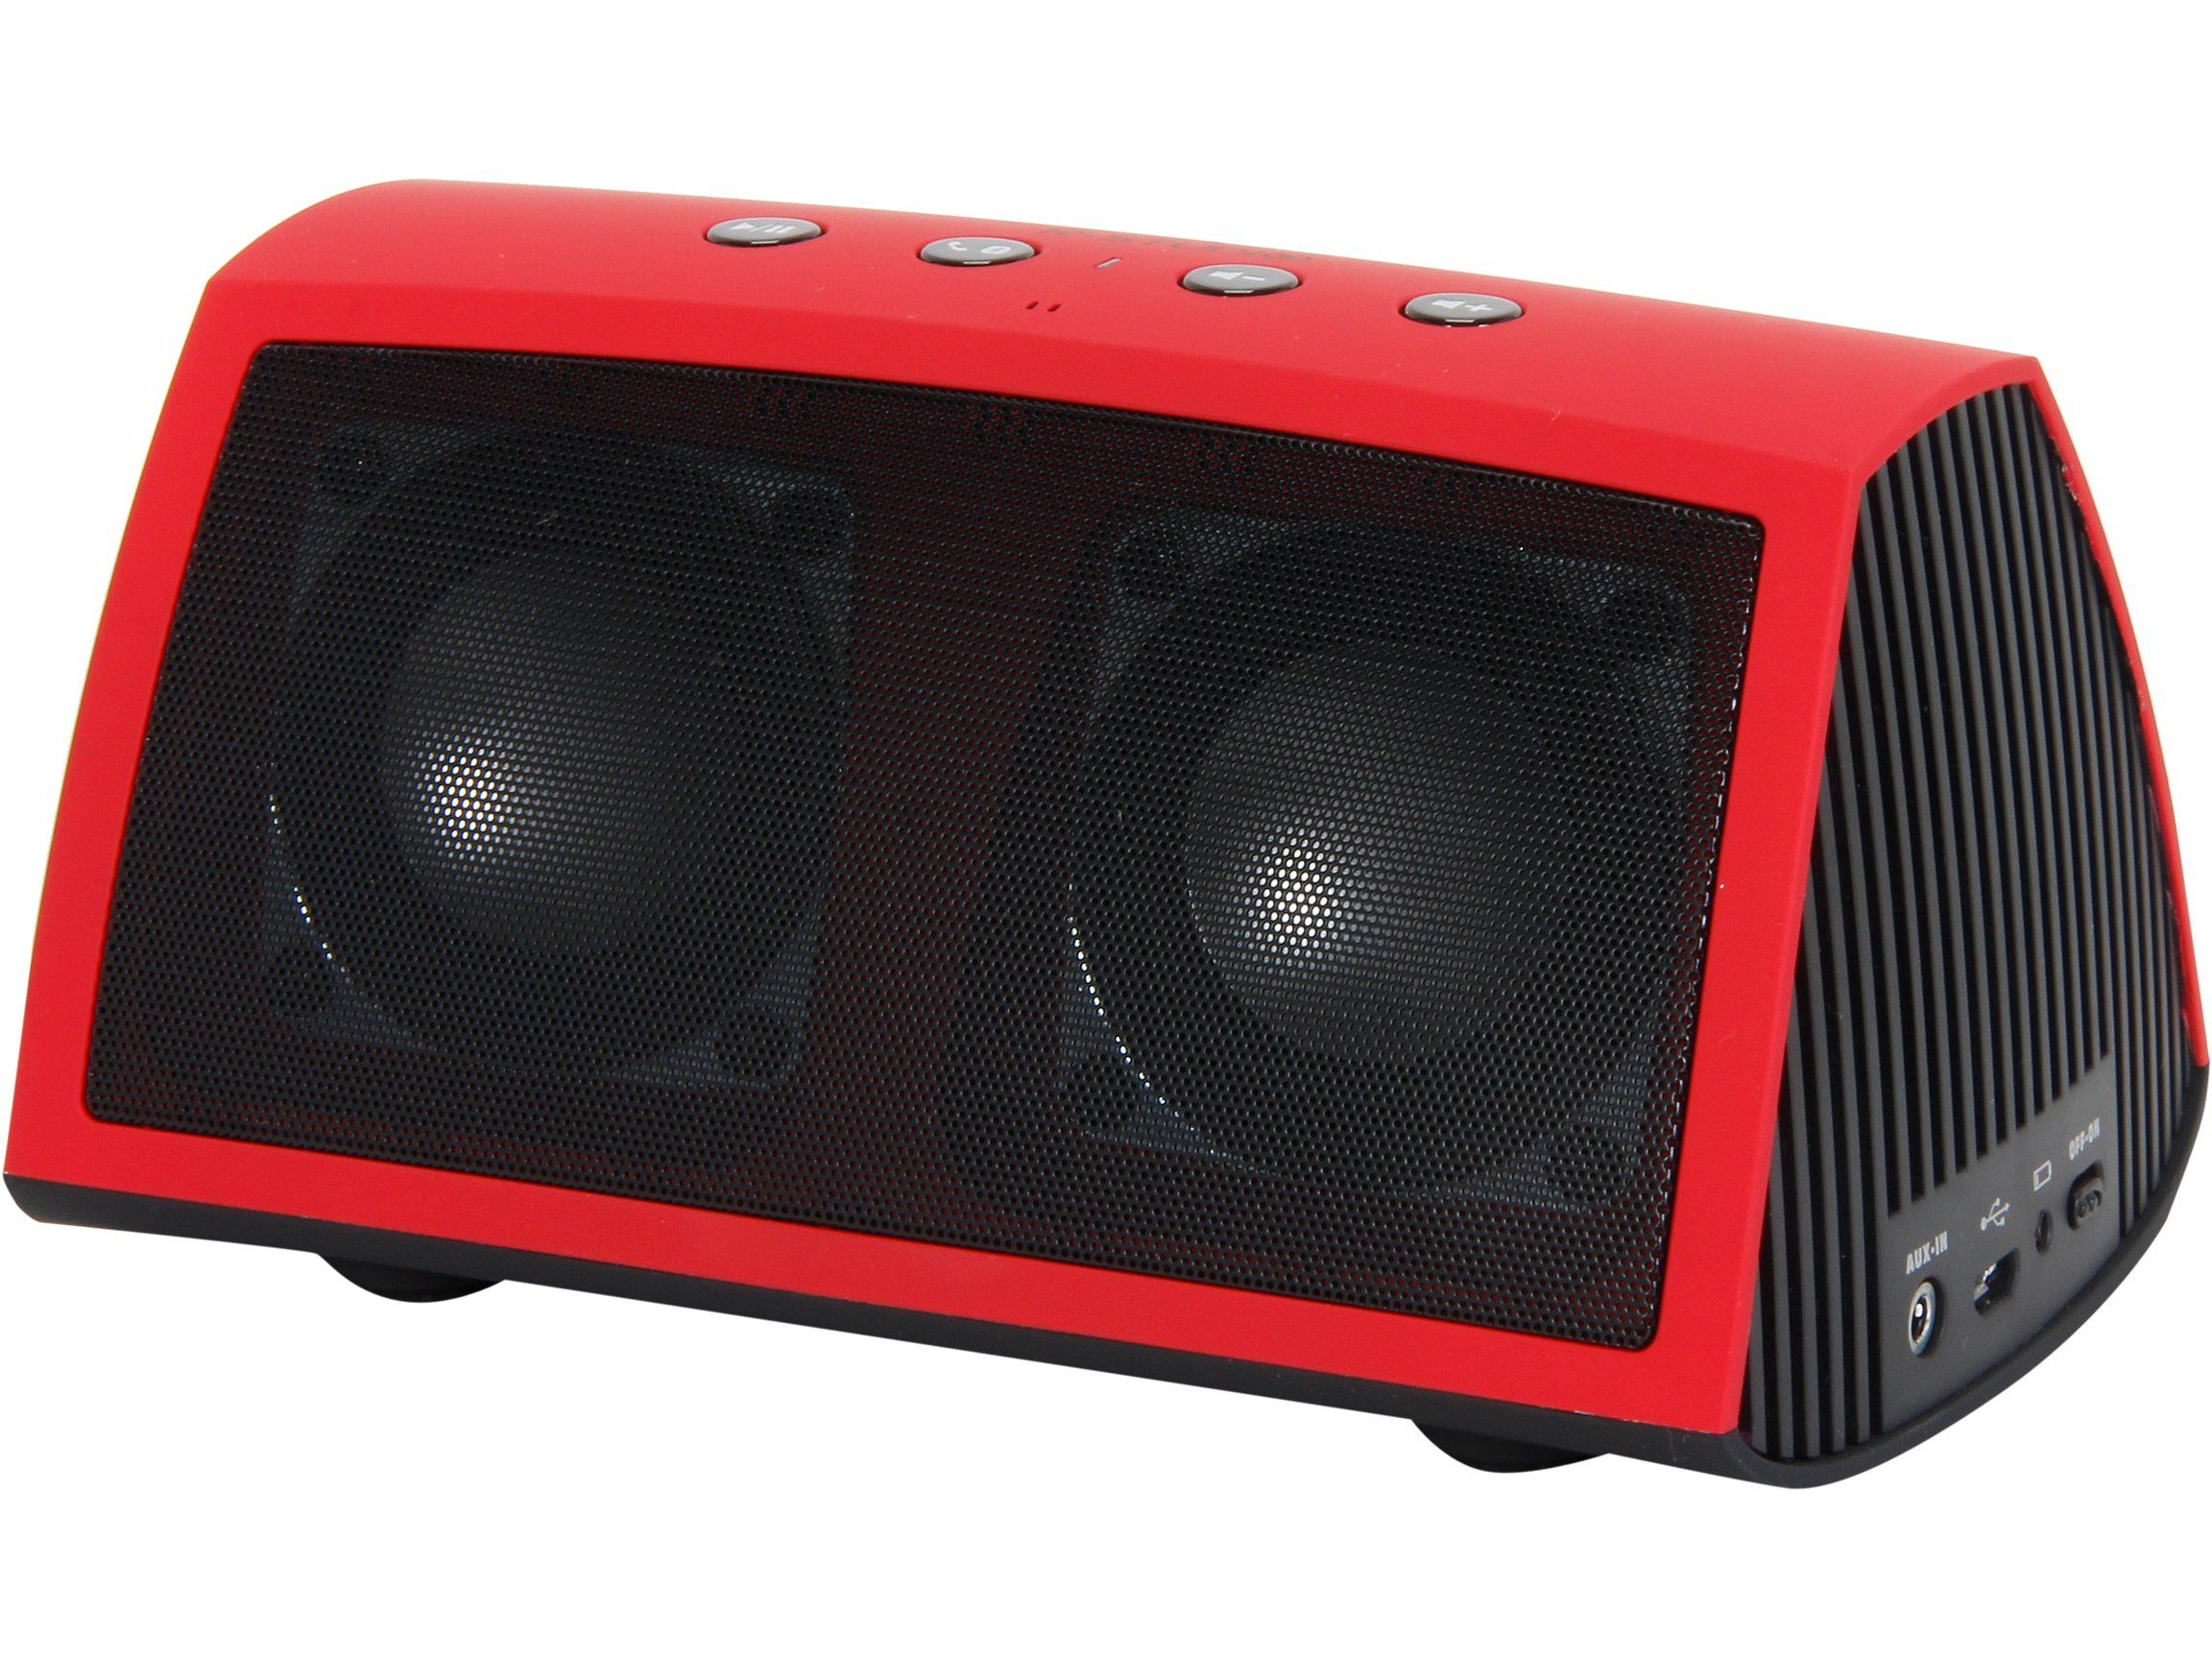 Rosewill Rosewill R-Studio AMPBOX Bluetooth Portable Speaker with Built-In Mic and Rechargeable Battery - Speakers - Retail Packaging - Red. A2DP Bluetooth with 30 foot range for wireless music streaming. Built-in microphone for phone calls. Rechargeable Lithium Polymer battery offers up to 8 hours of playtime. Works with any audio device that has Bluetooth or 3.5mm audio plug. A2DP Bluetooth with 30 foot range for wireless music streaming ^Built-in microphone for phone calls…